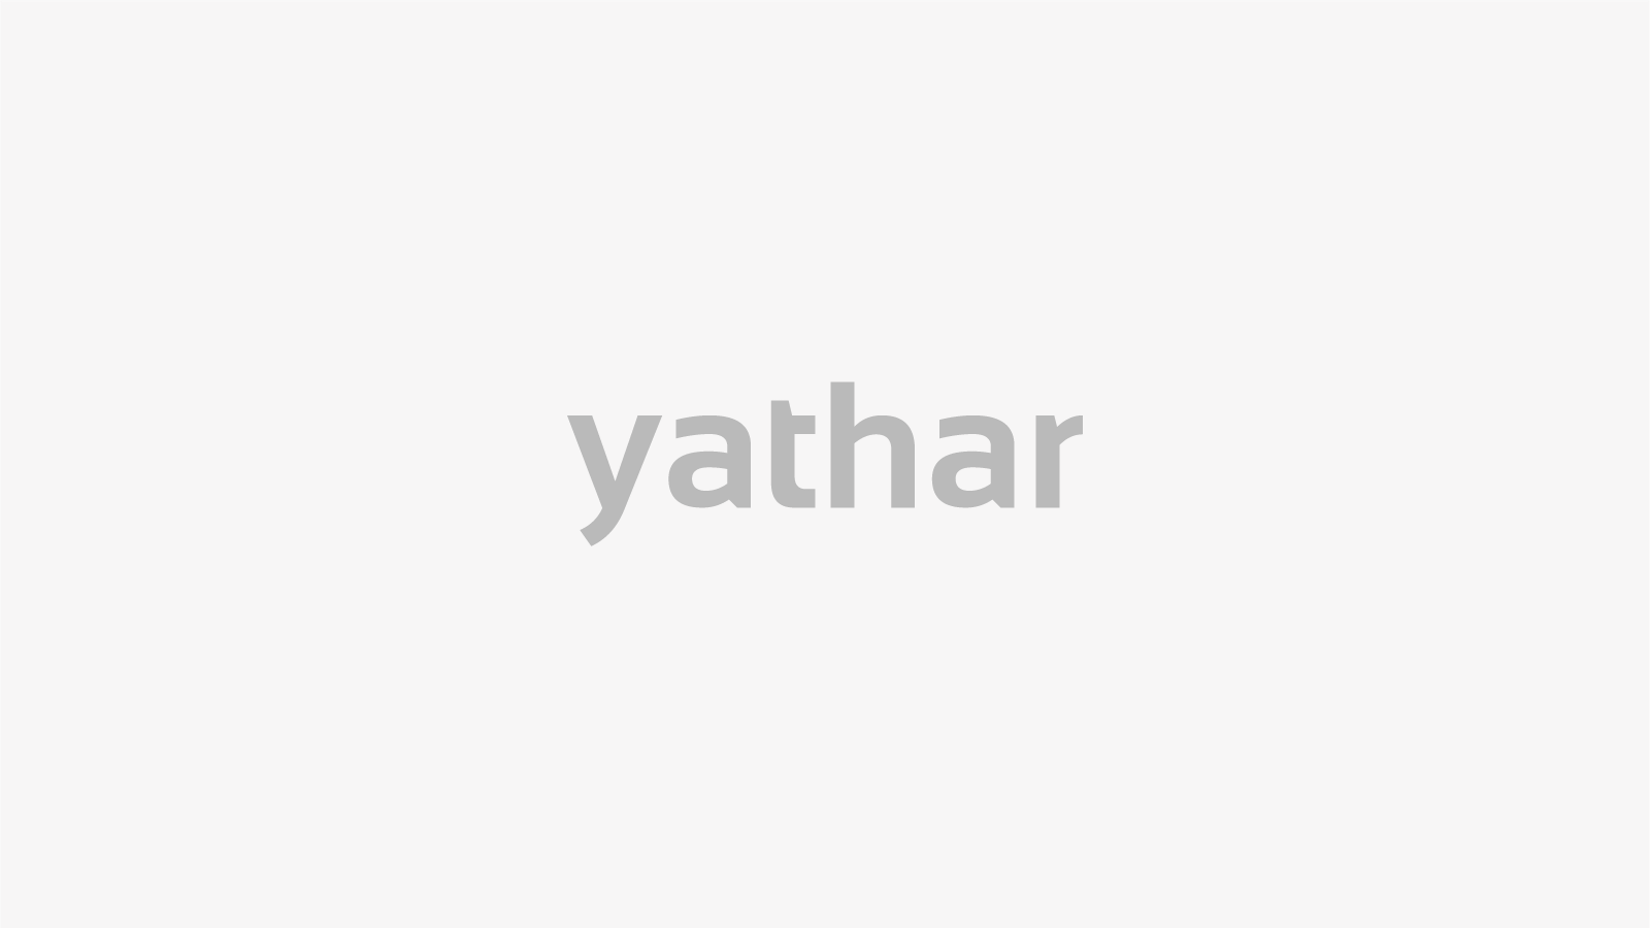 Zin Yaw Food Shop | yathar